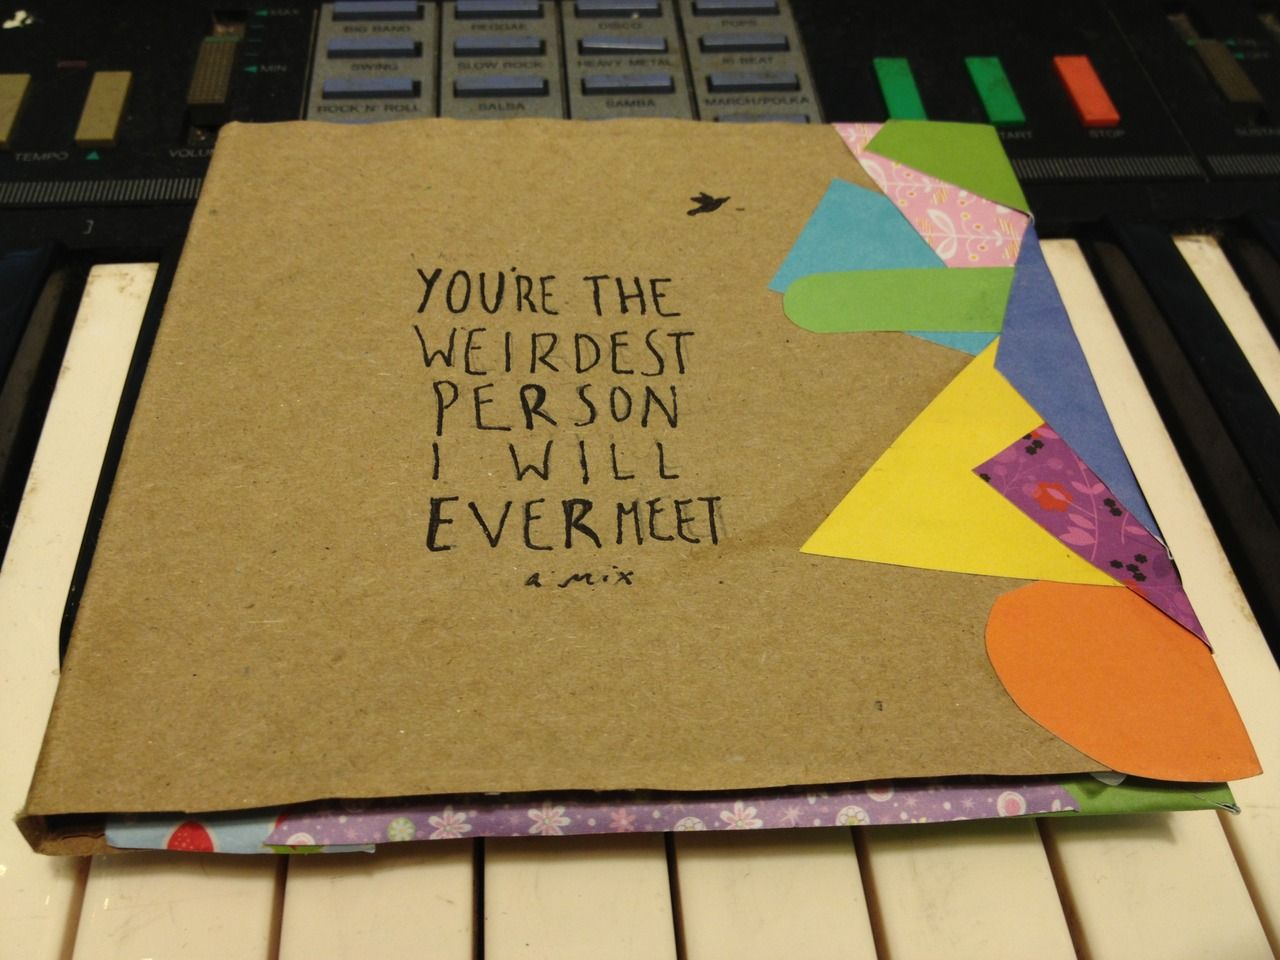 Take a look at this simple homemade CD sleeve cover art for ...